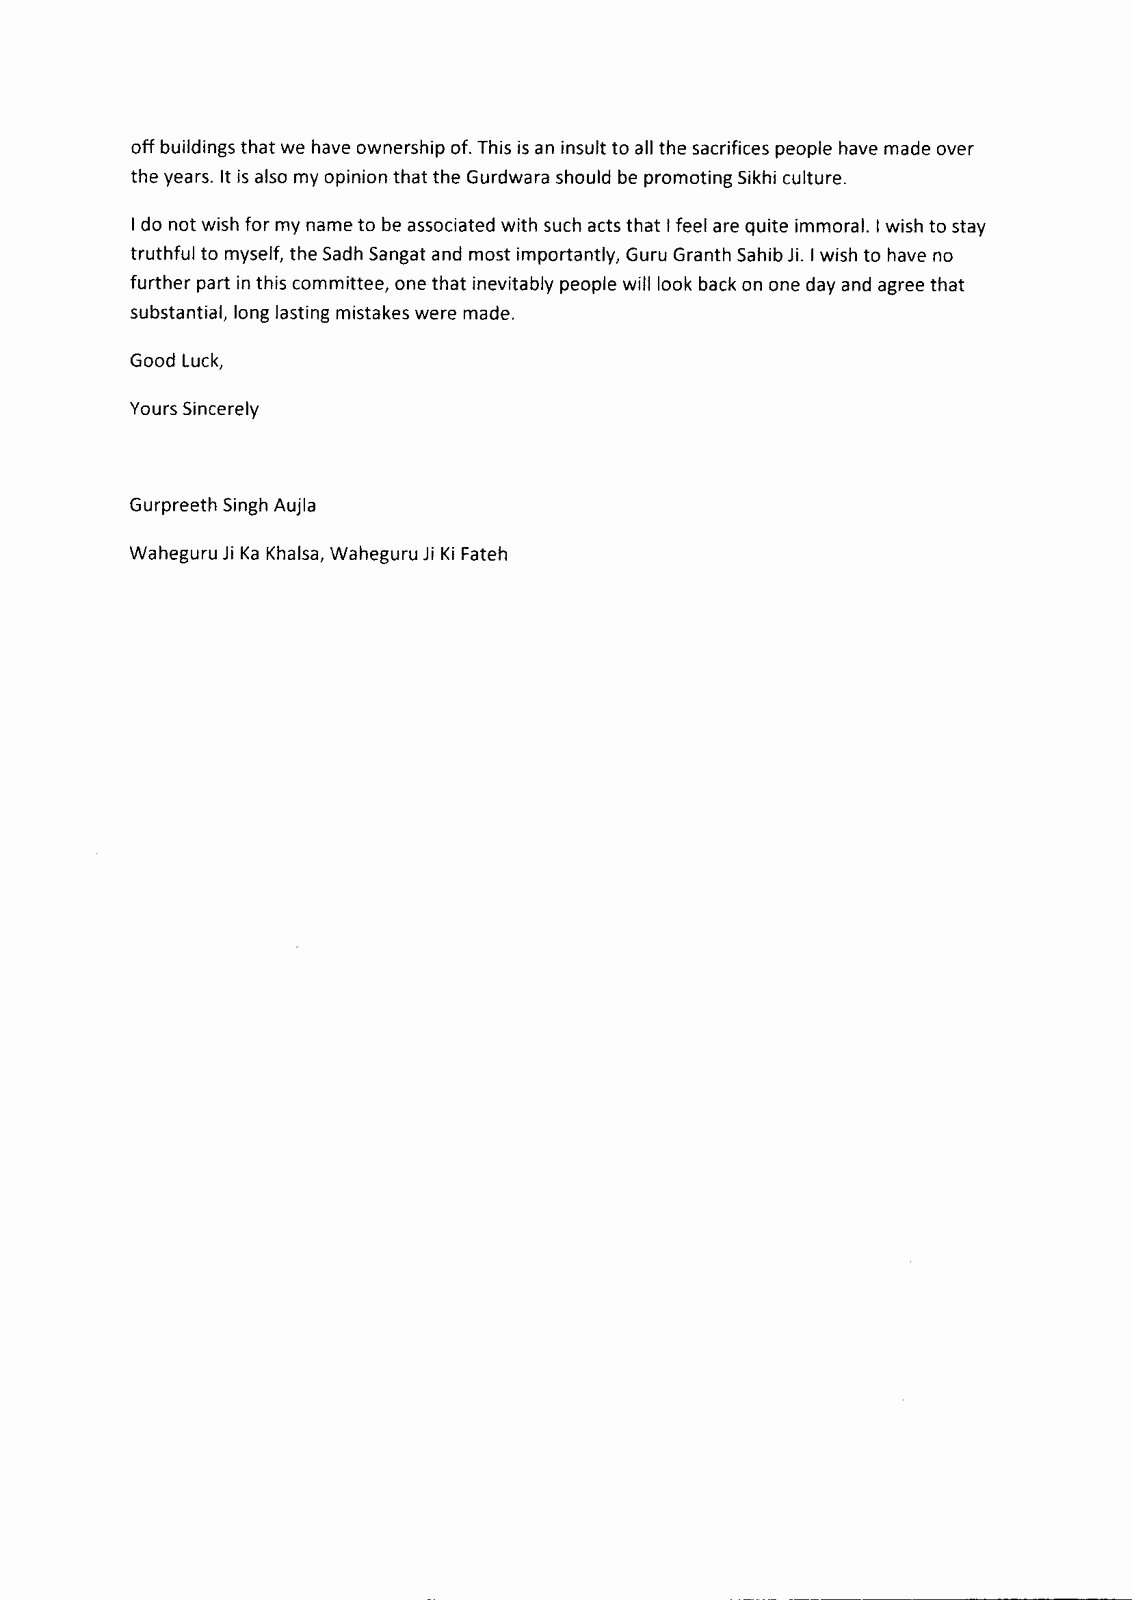 Letter Of Resignation From Committee Lovely Satkaar Campaign Gnss Dudley Gurdwara Mittee